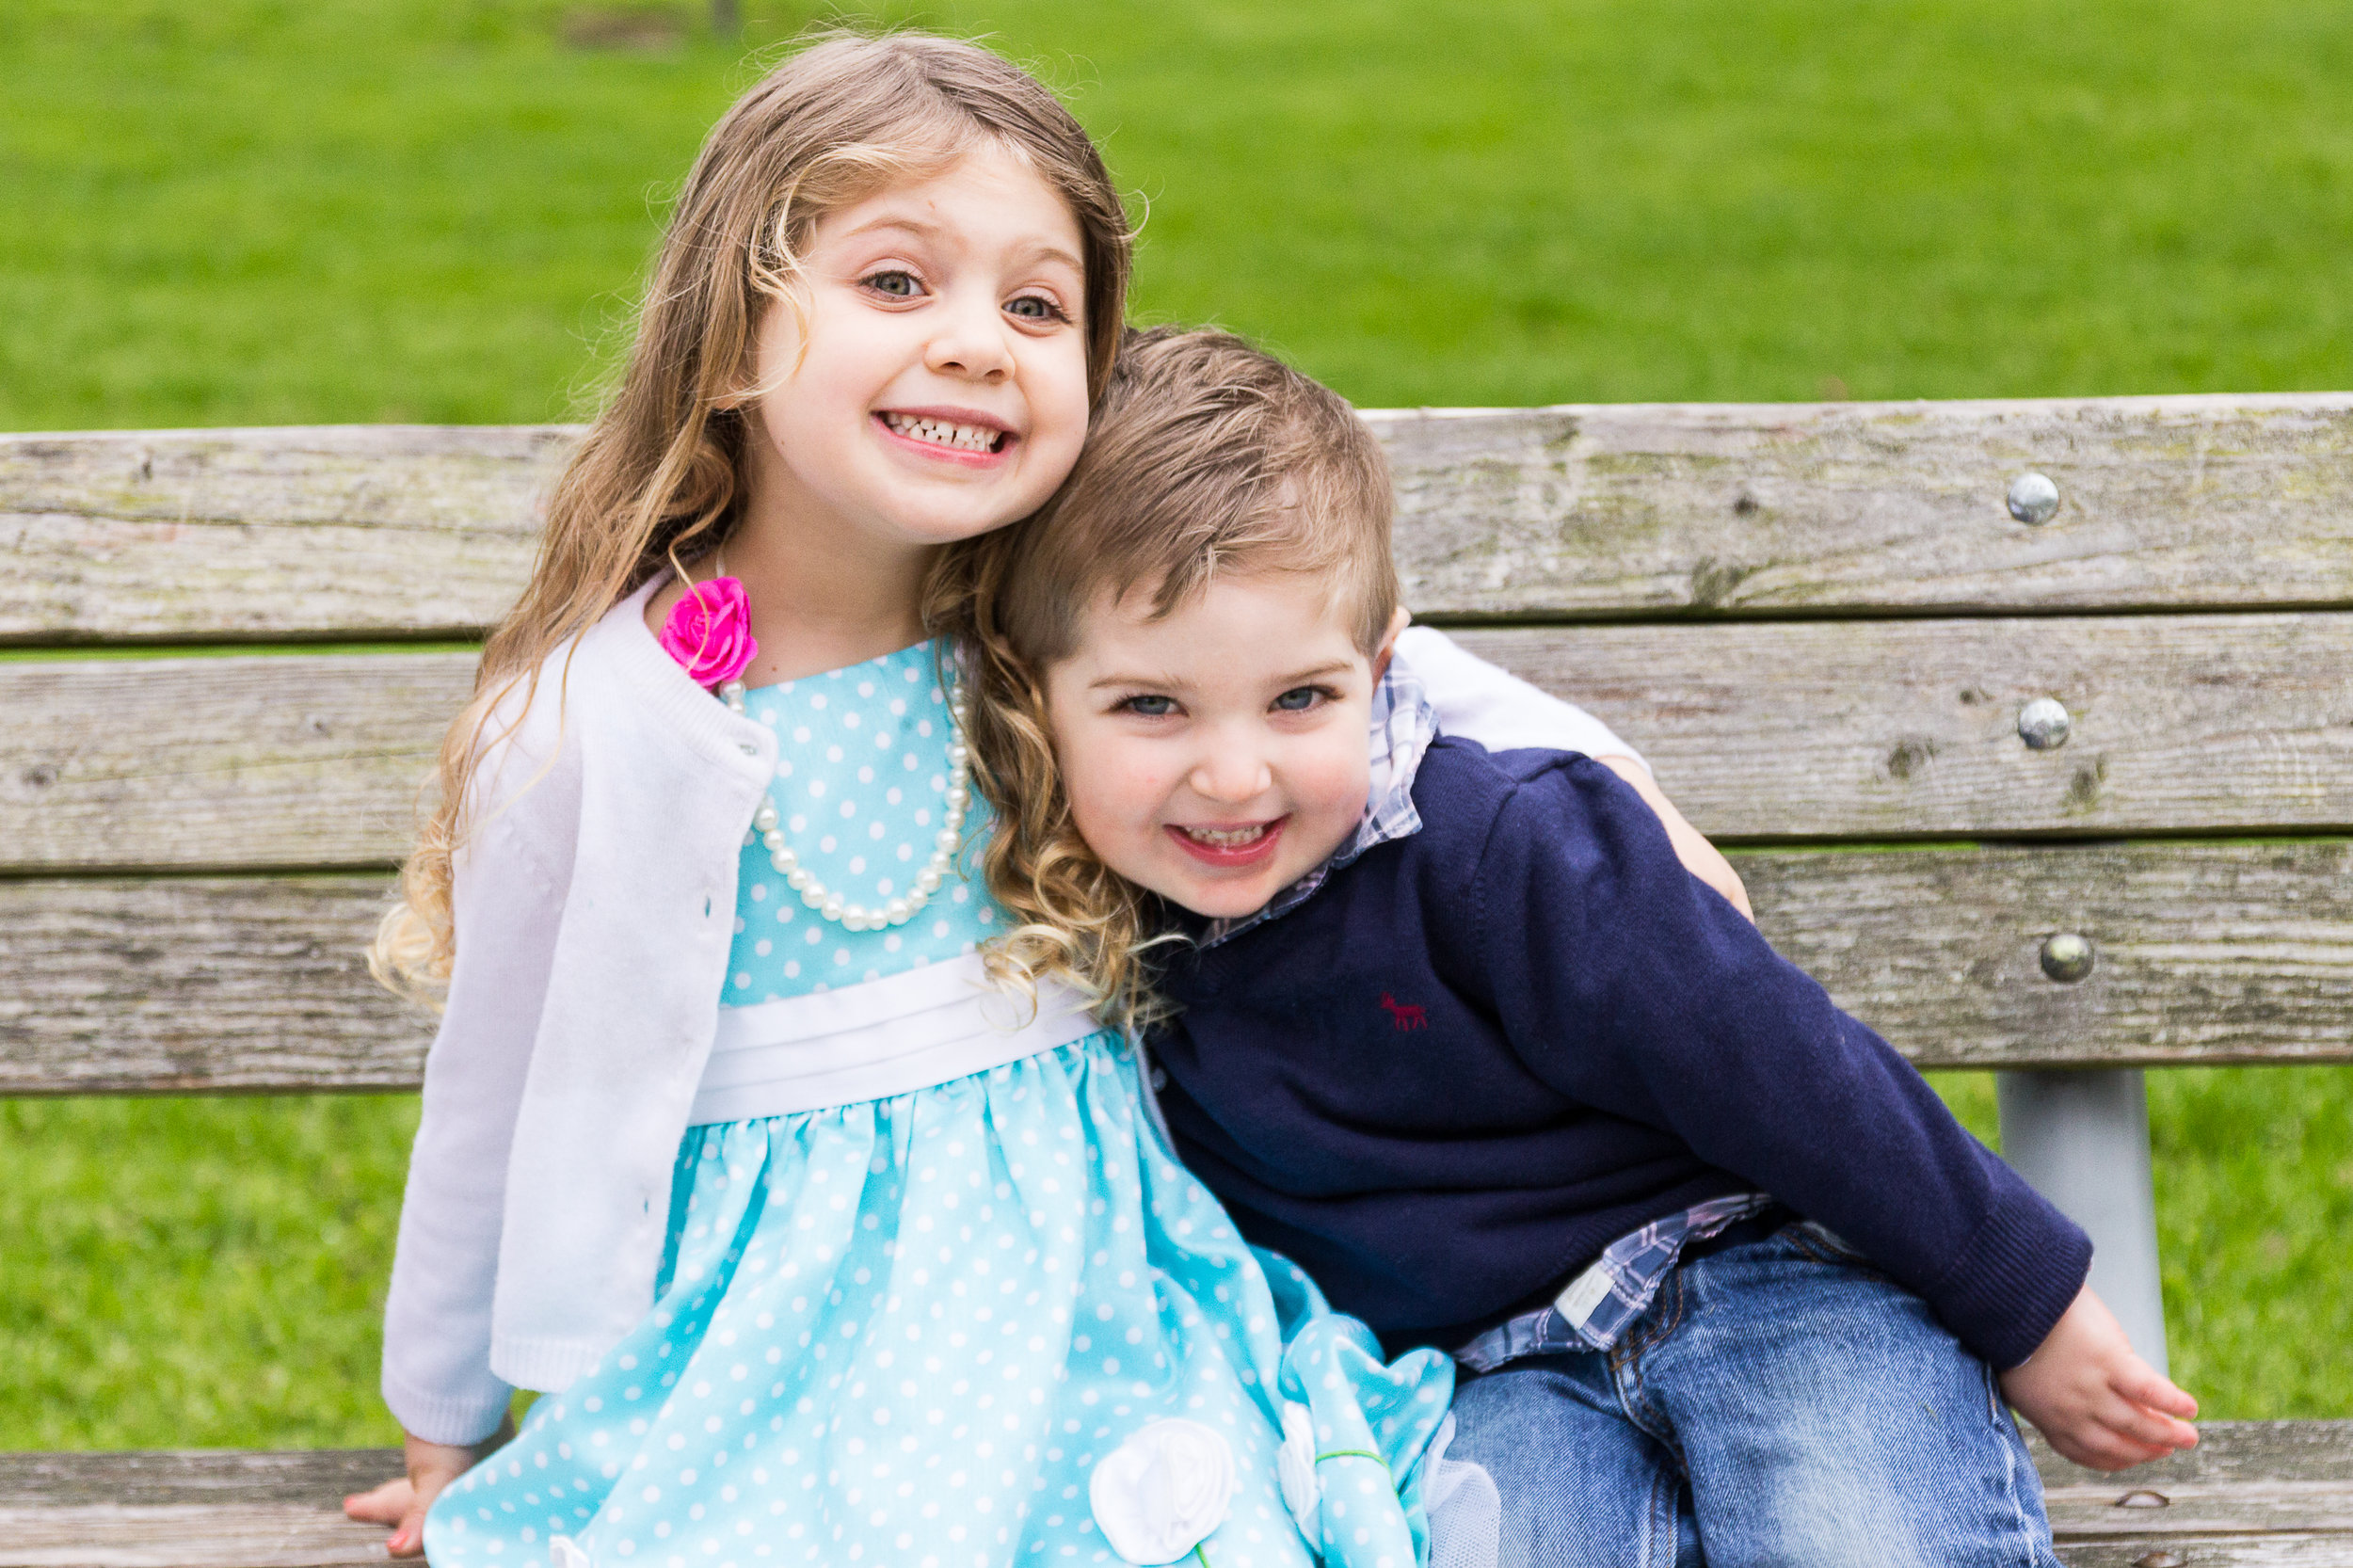 4 year old girl and 4 year old brother sitting on a park bench